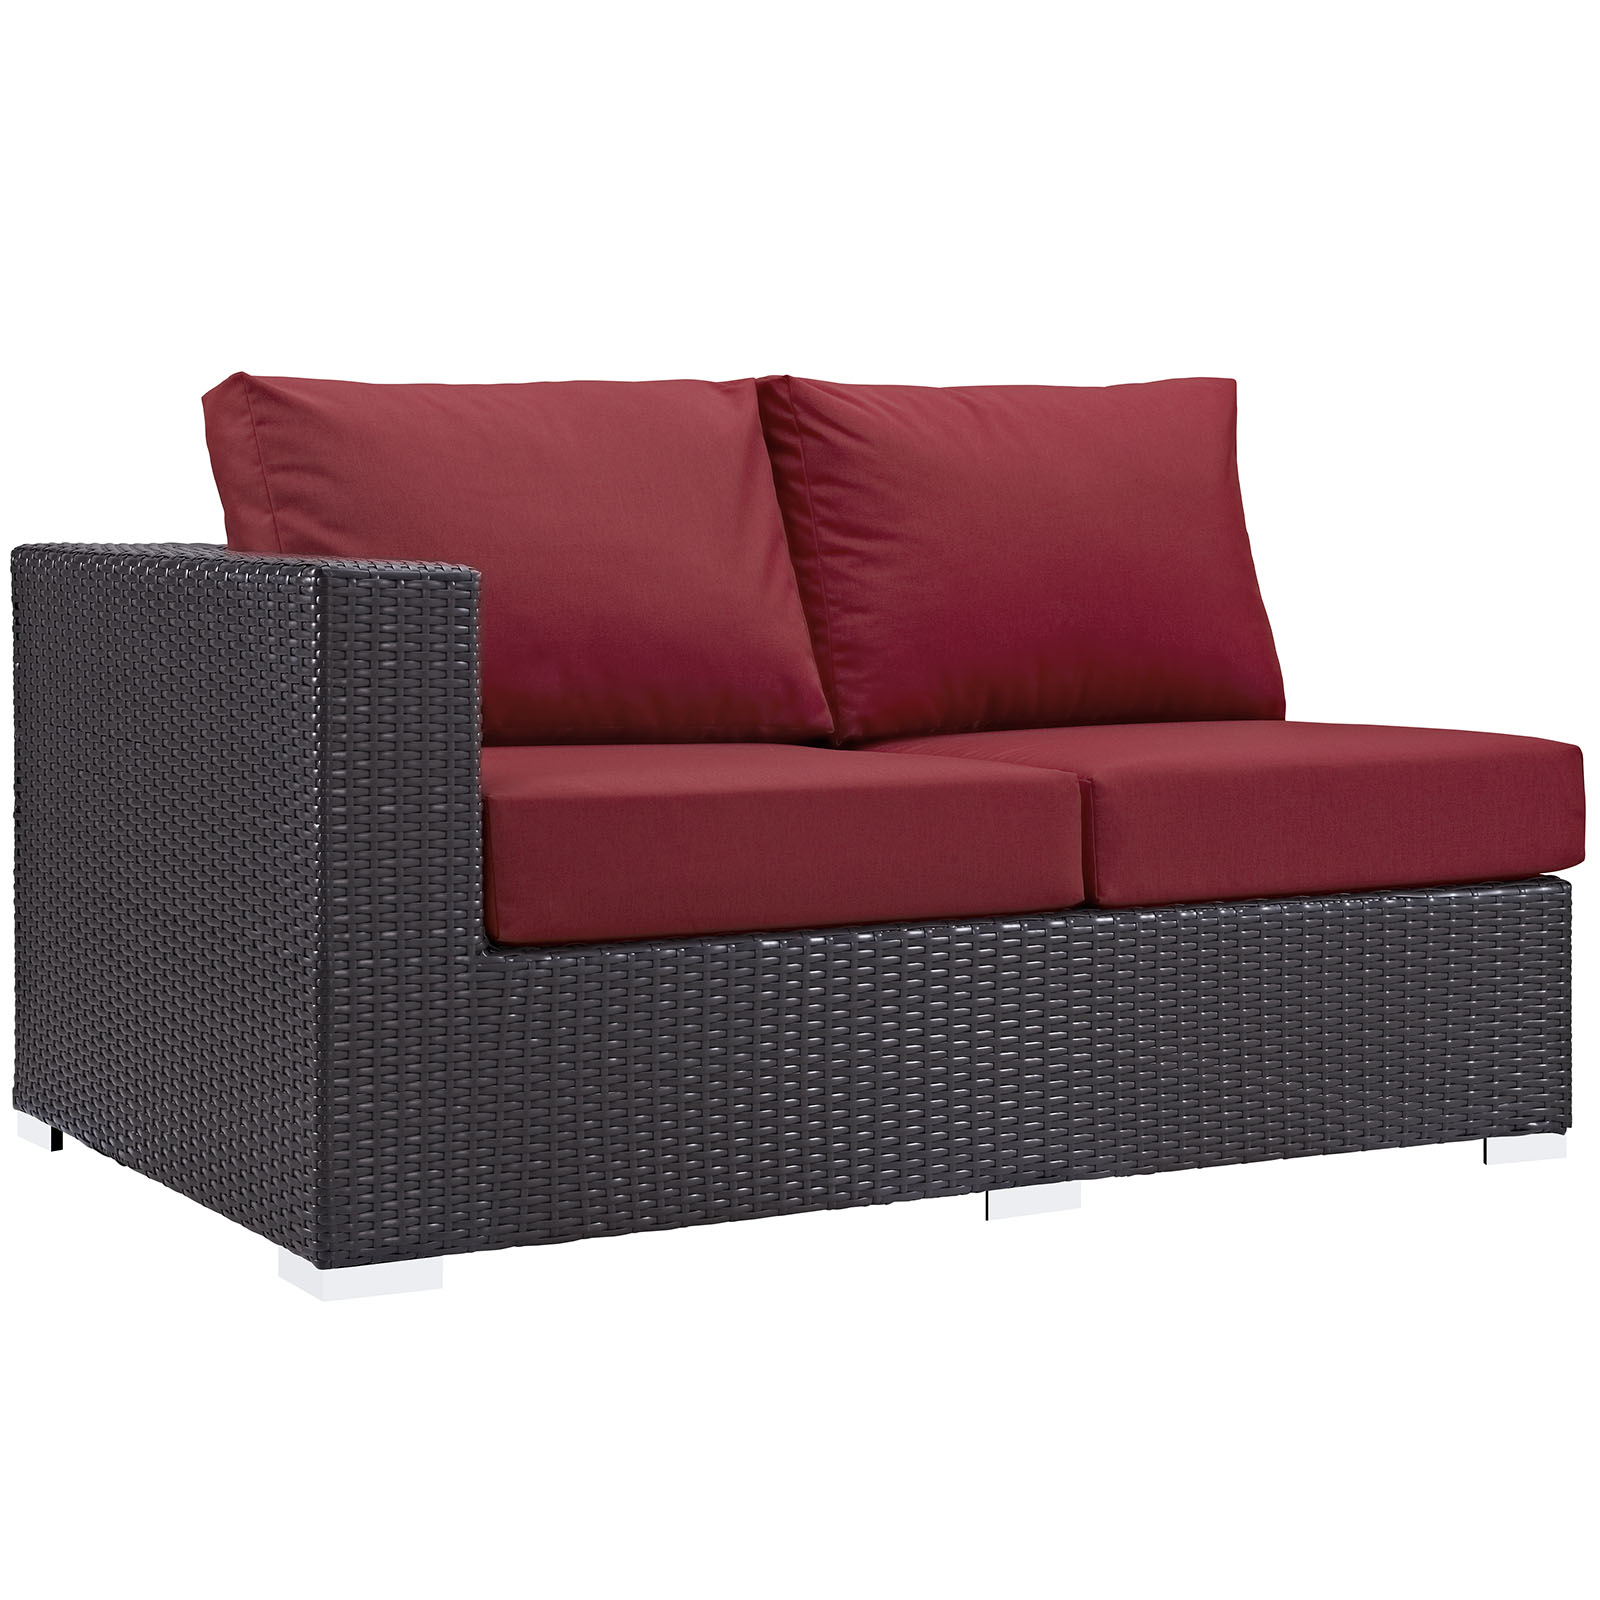 Modern Contemporary Urban Design Outdoor Patio Balcony Left Arm Loveseat Sofa, Red, Rattan